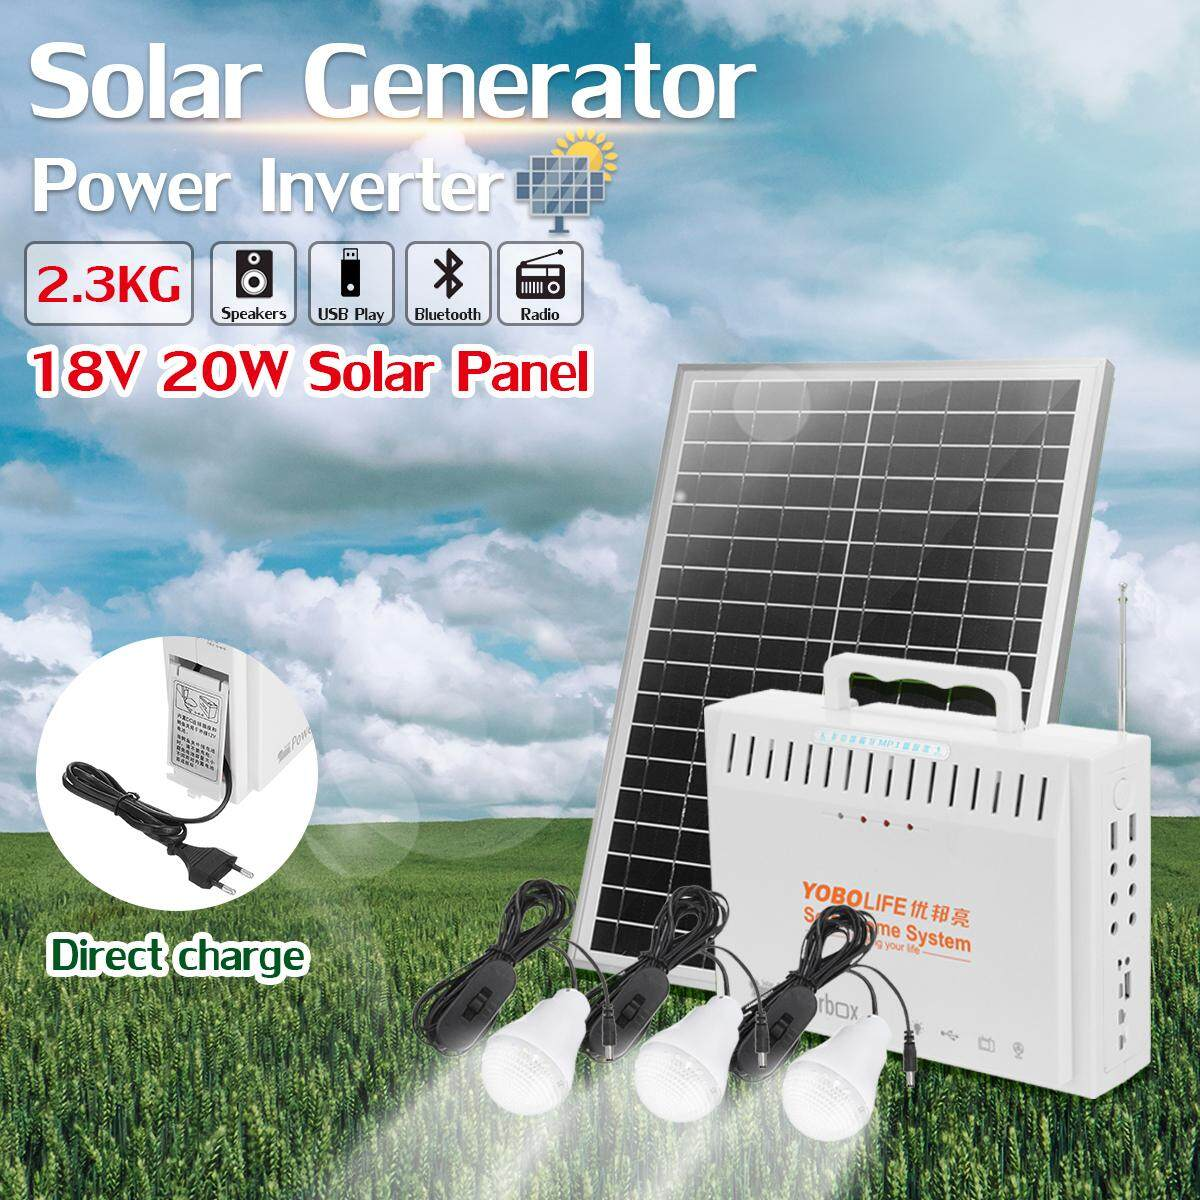 【Free Shipping + Flash Deal】20W 18V Solar Panel RV Boat Power Storage  Generator 3x LED USB Charger System